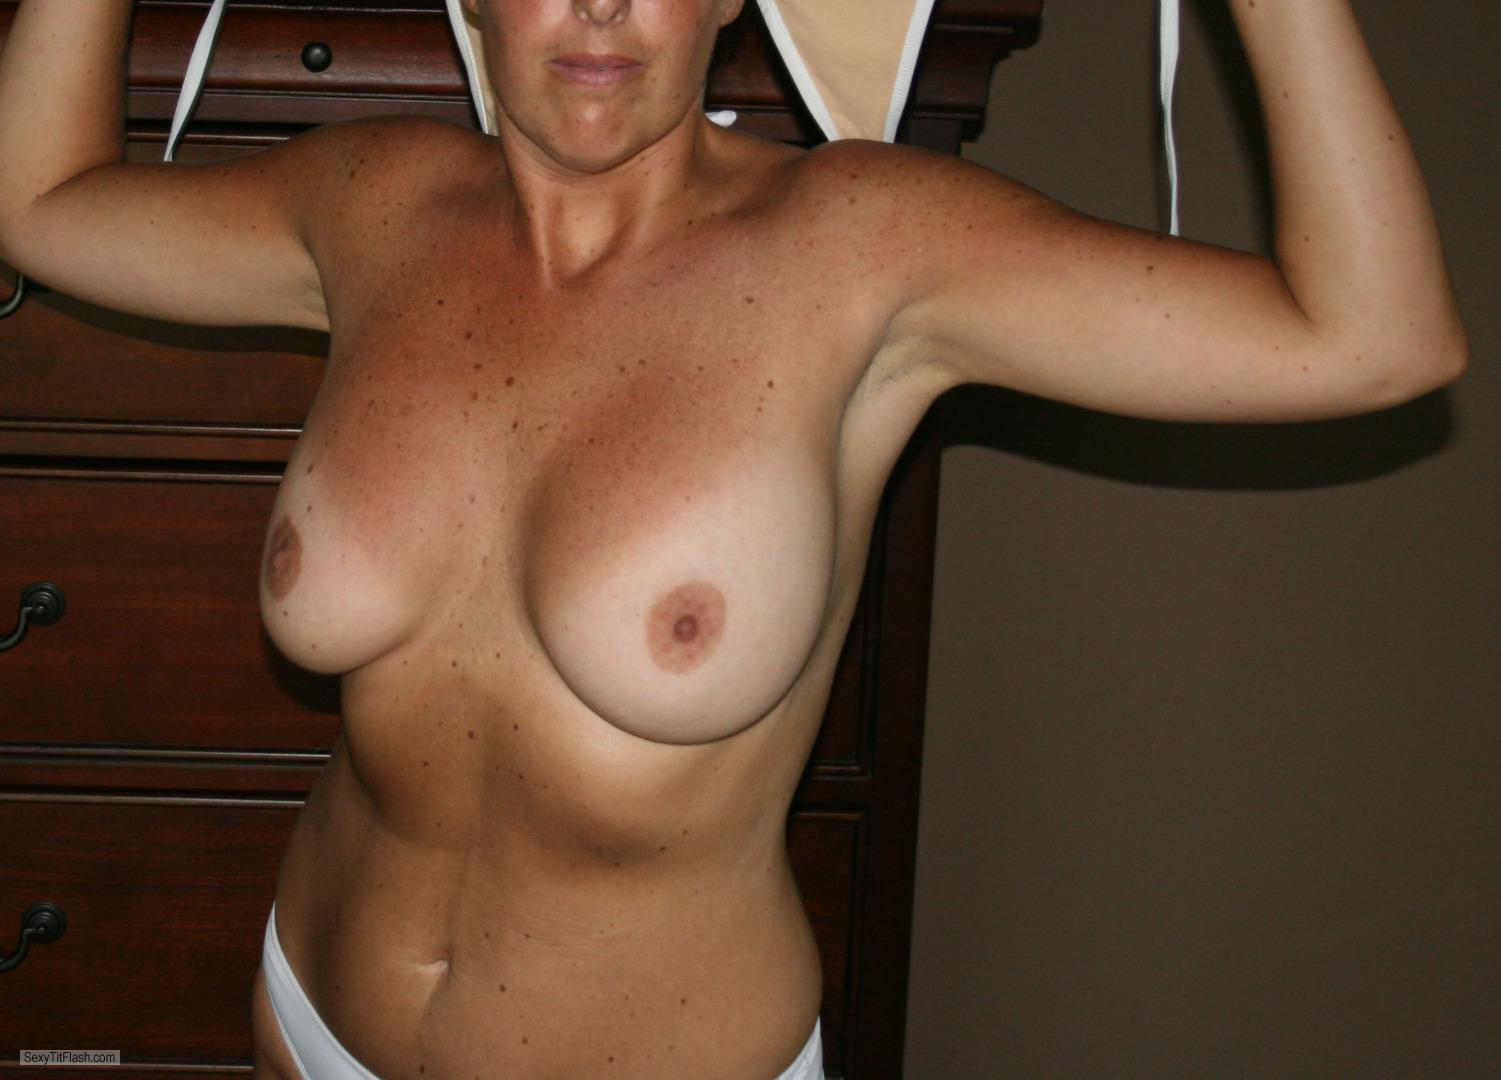 Tit Flash: Wife's Tanlined Very Big Tits - Jimanddi from United States